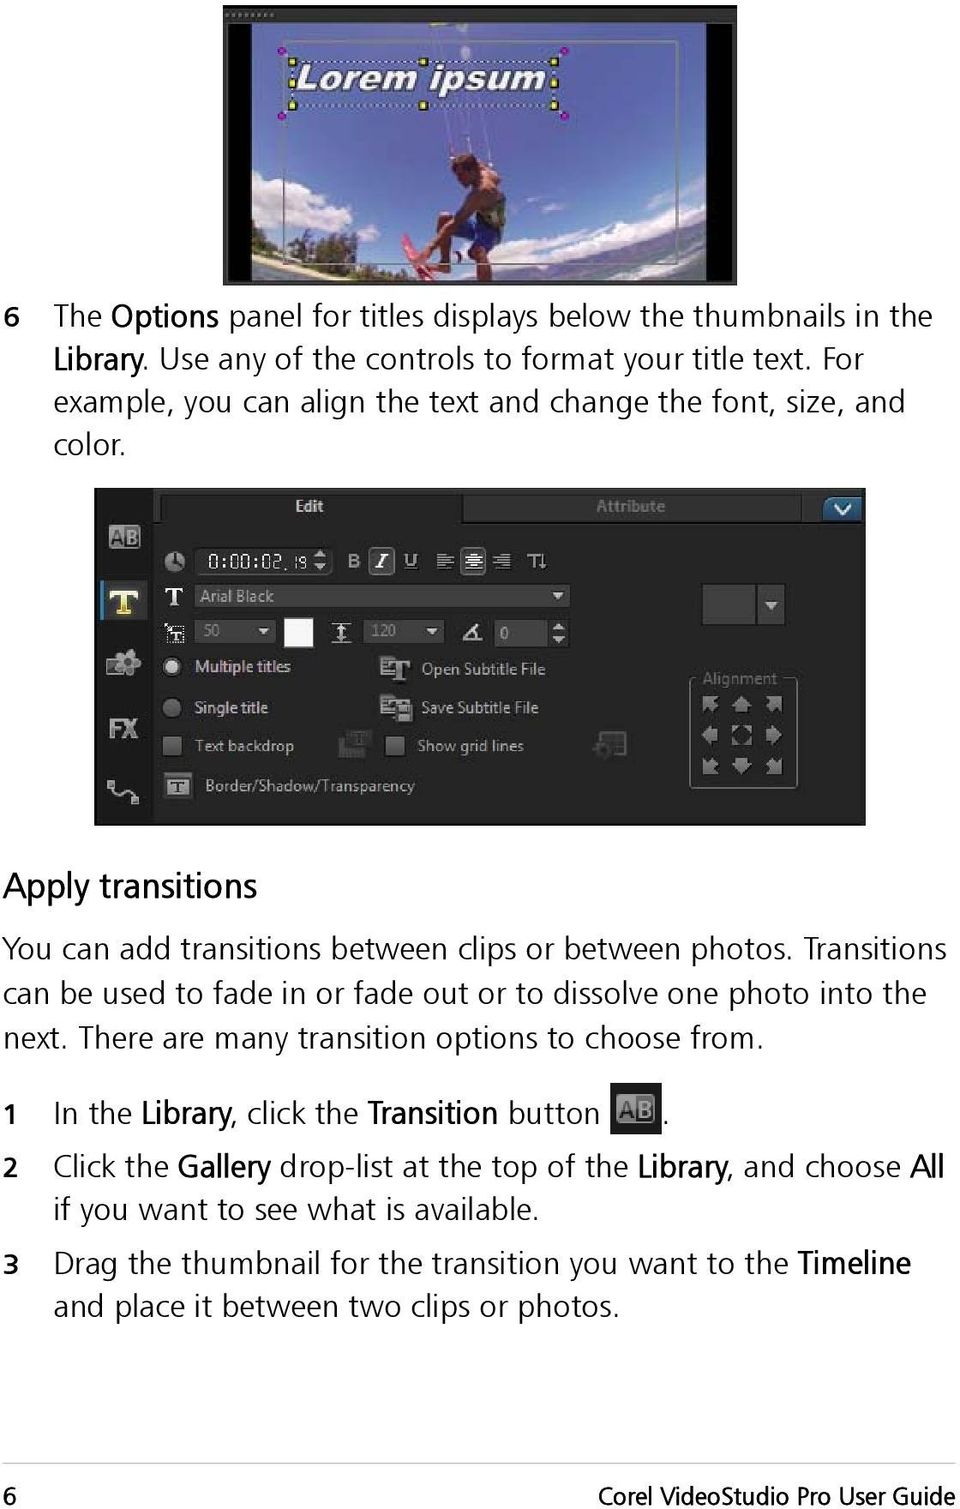 Transitions can be used to fade in or fade out or to dissolve one photo into the next. There are many transition options to choose from.